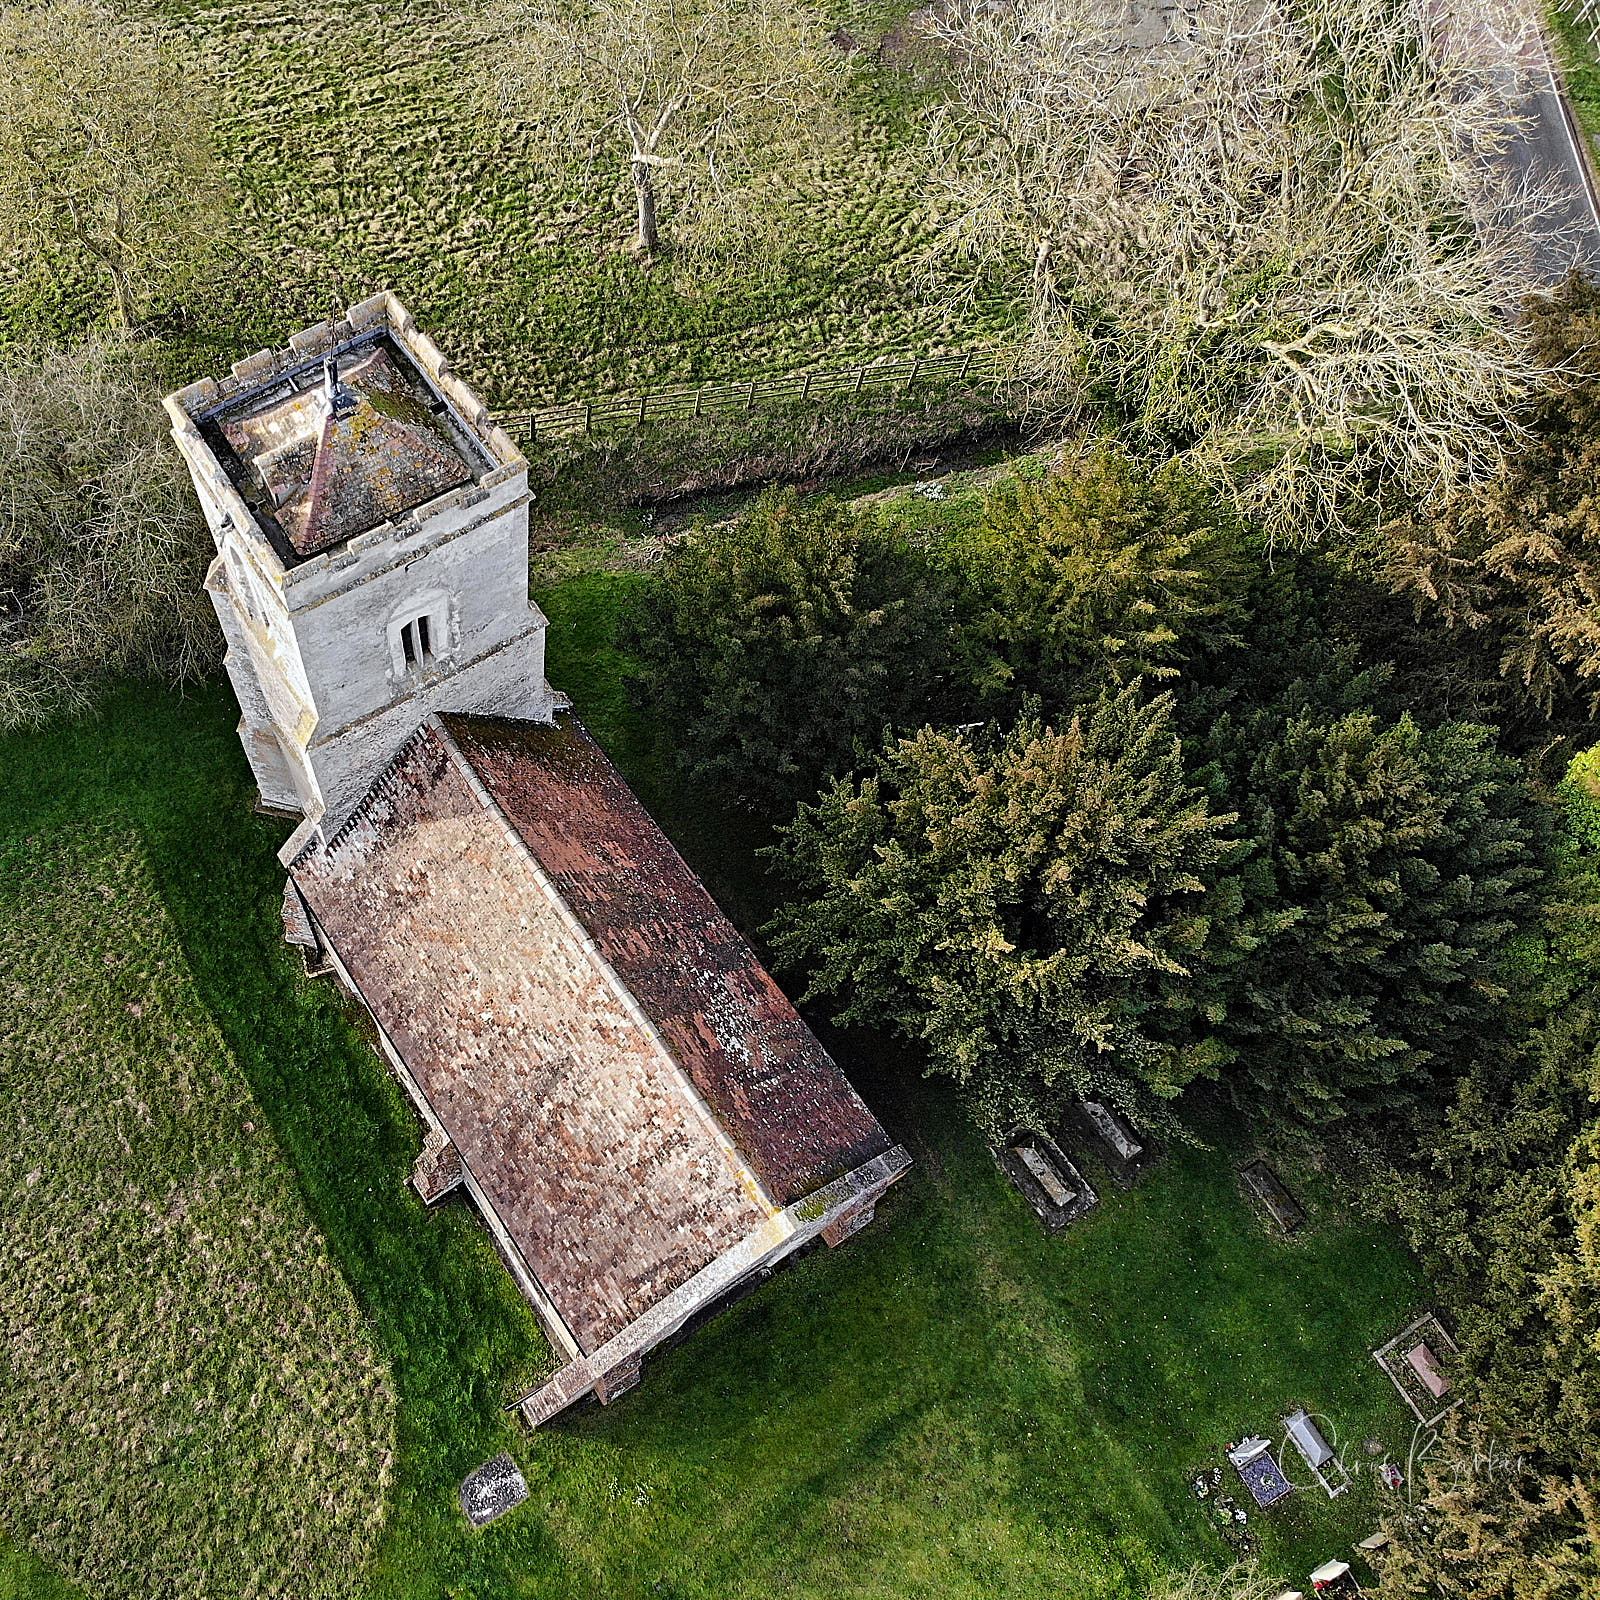 A church viewed from above